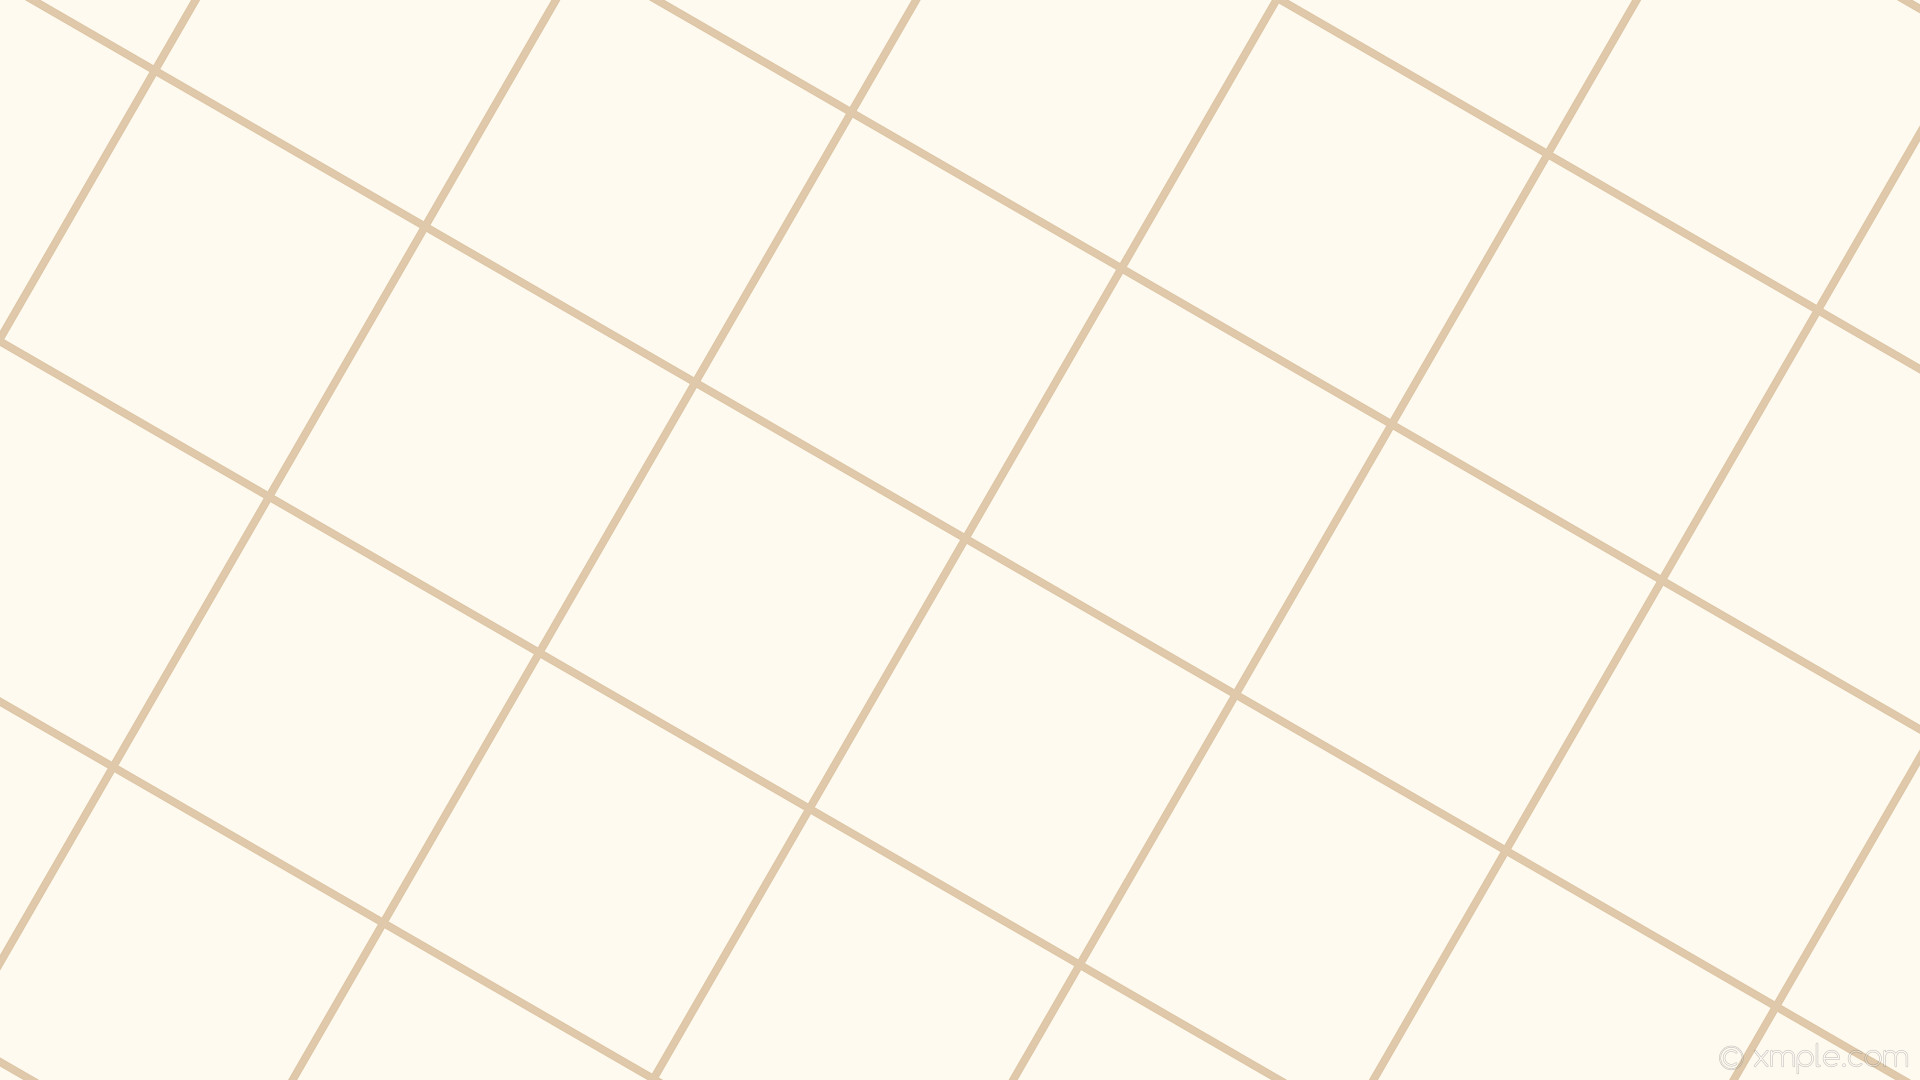 1920x1080 wallpaper brown graph paper white grid floral white tan #fffaf0 #d2b48c 60°  8px